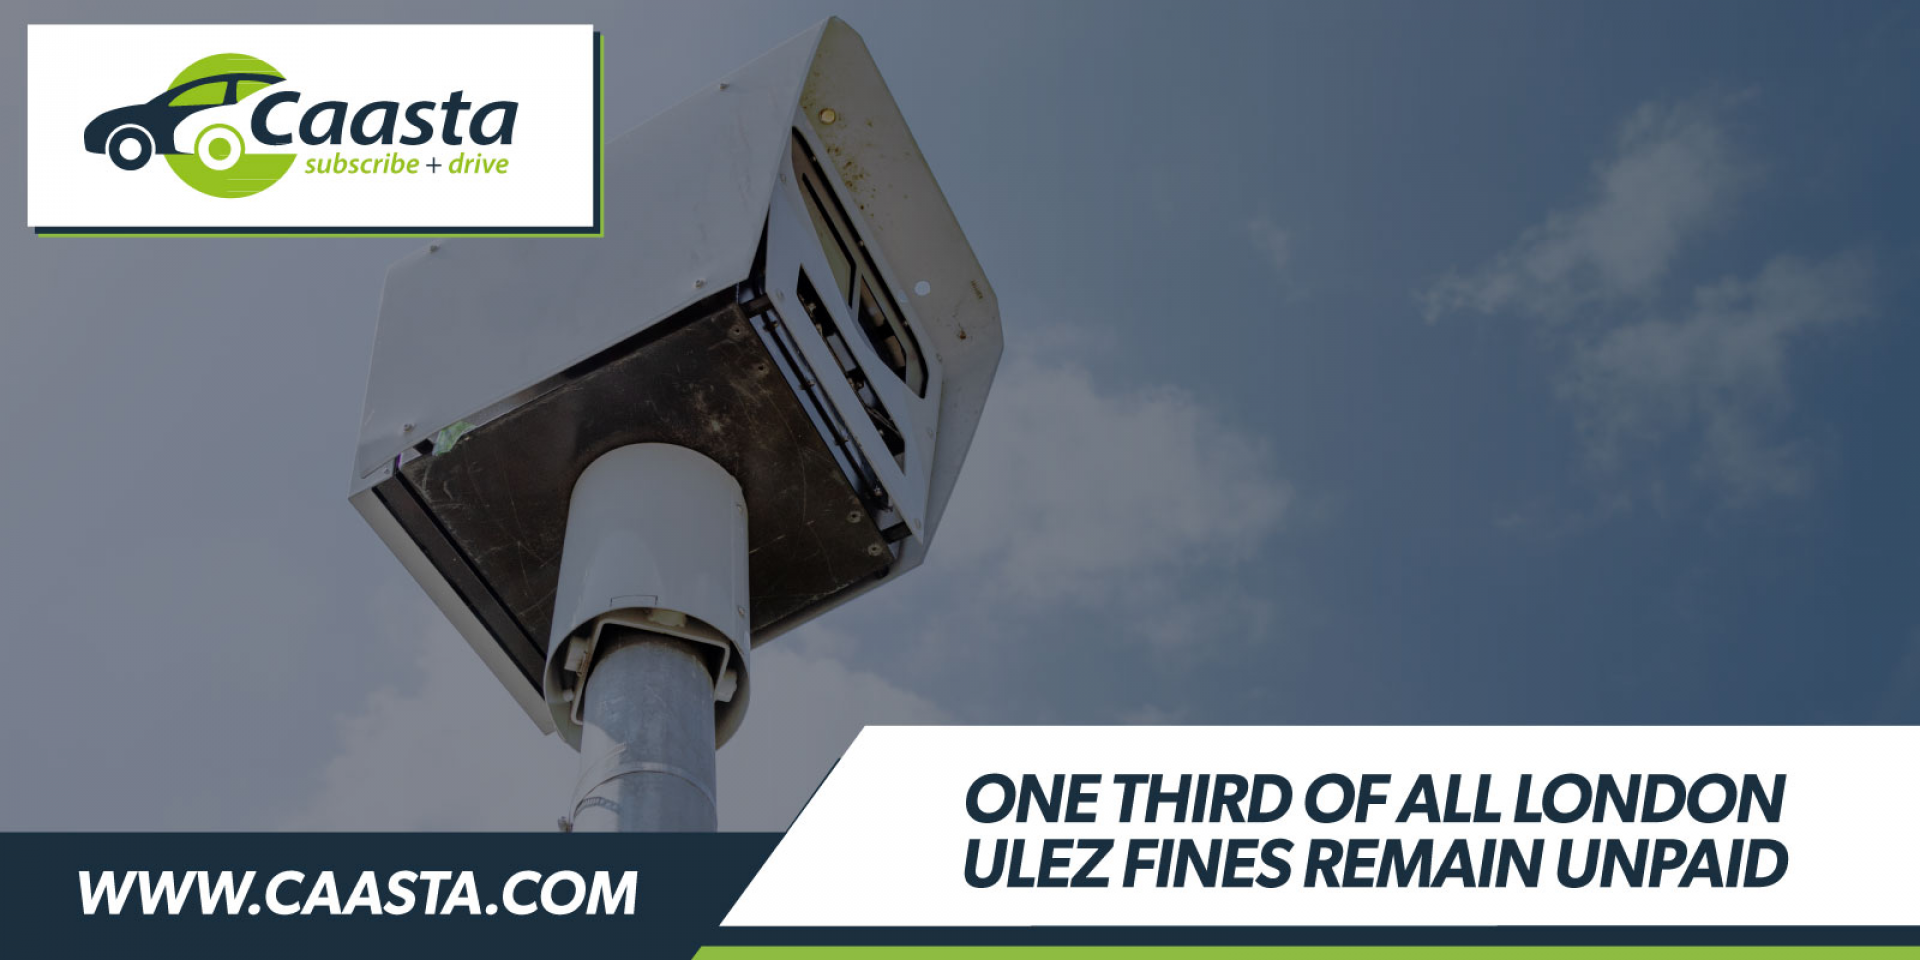 One-third of all Ultra Low Emission Zone (ULEZ) fines issued in London are left unpaid